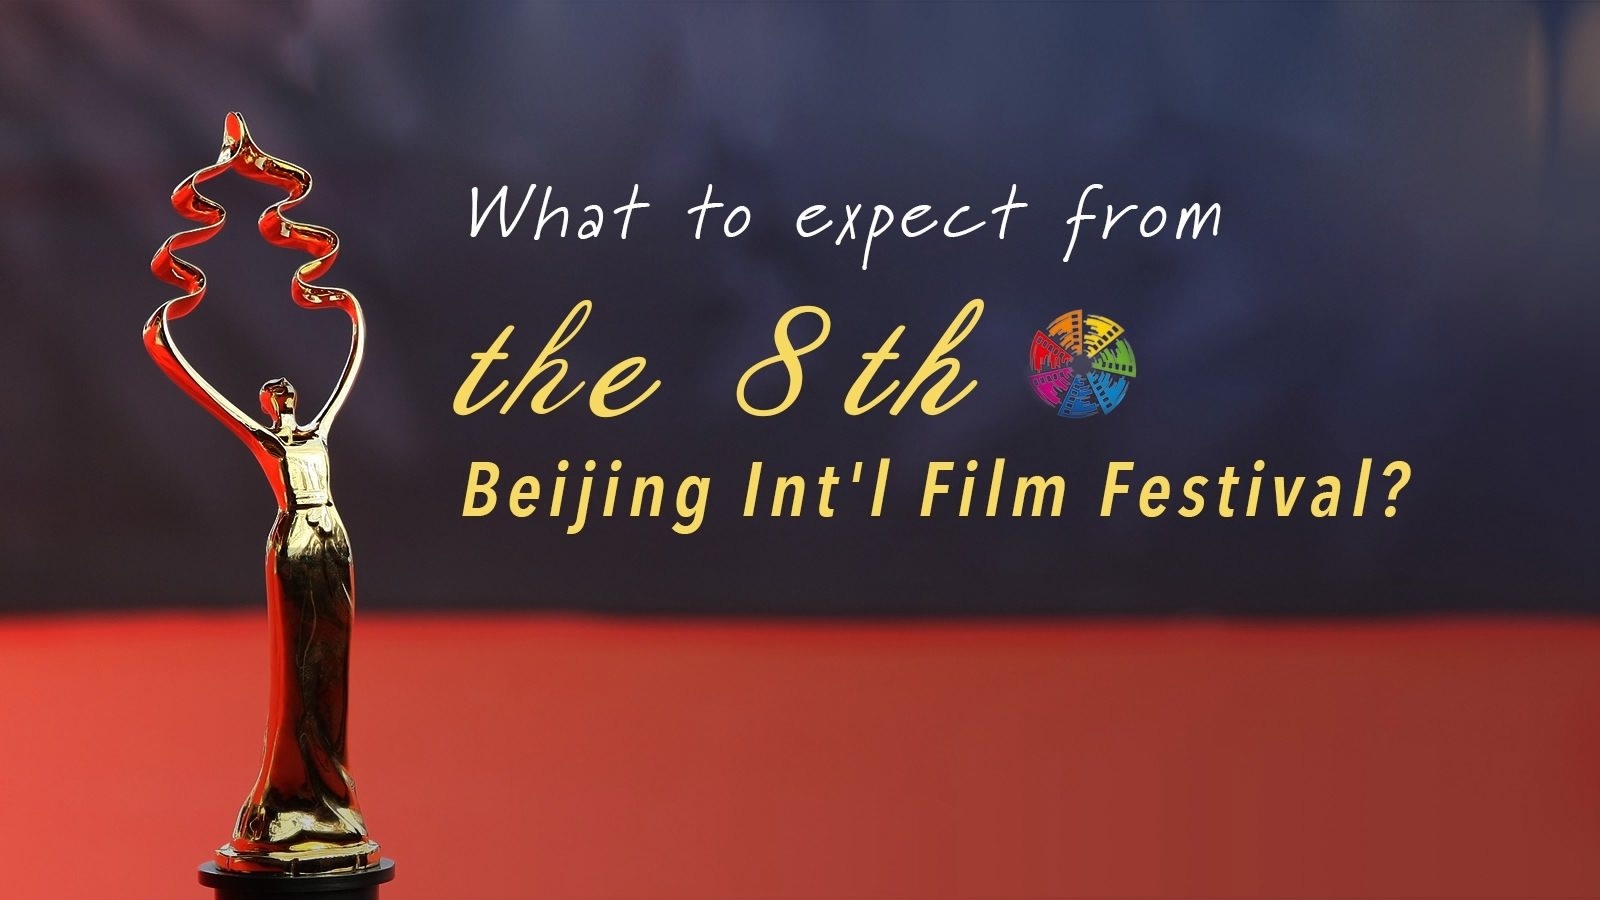 What to expect from the 8th Beijing Int'l Film Festival?